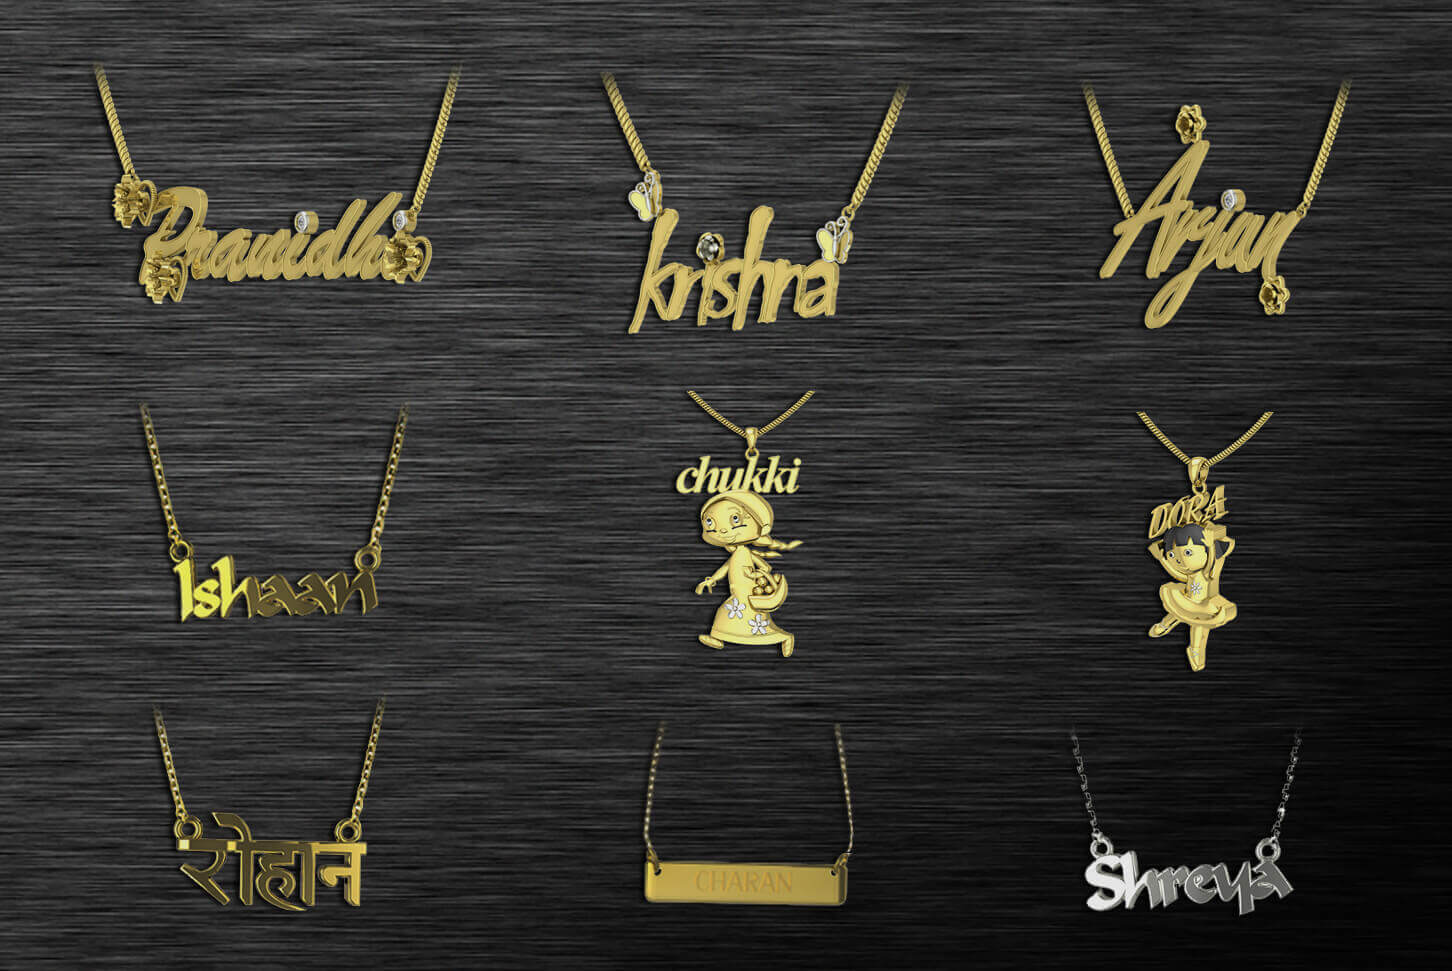 baby idea off sale gold necklace chains personalized clipart name pretentious